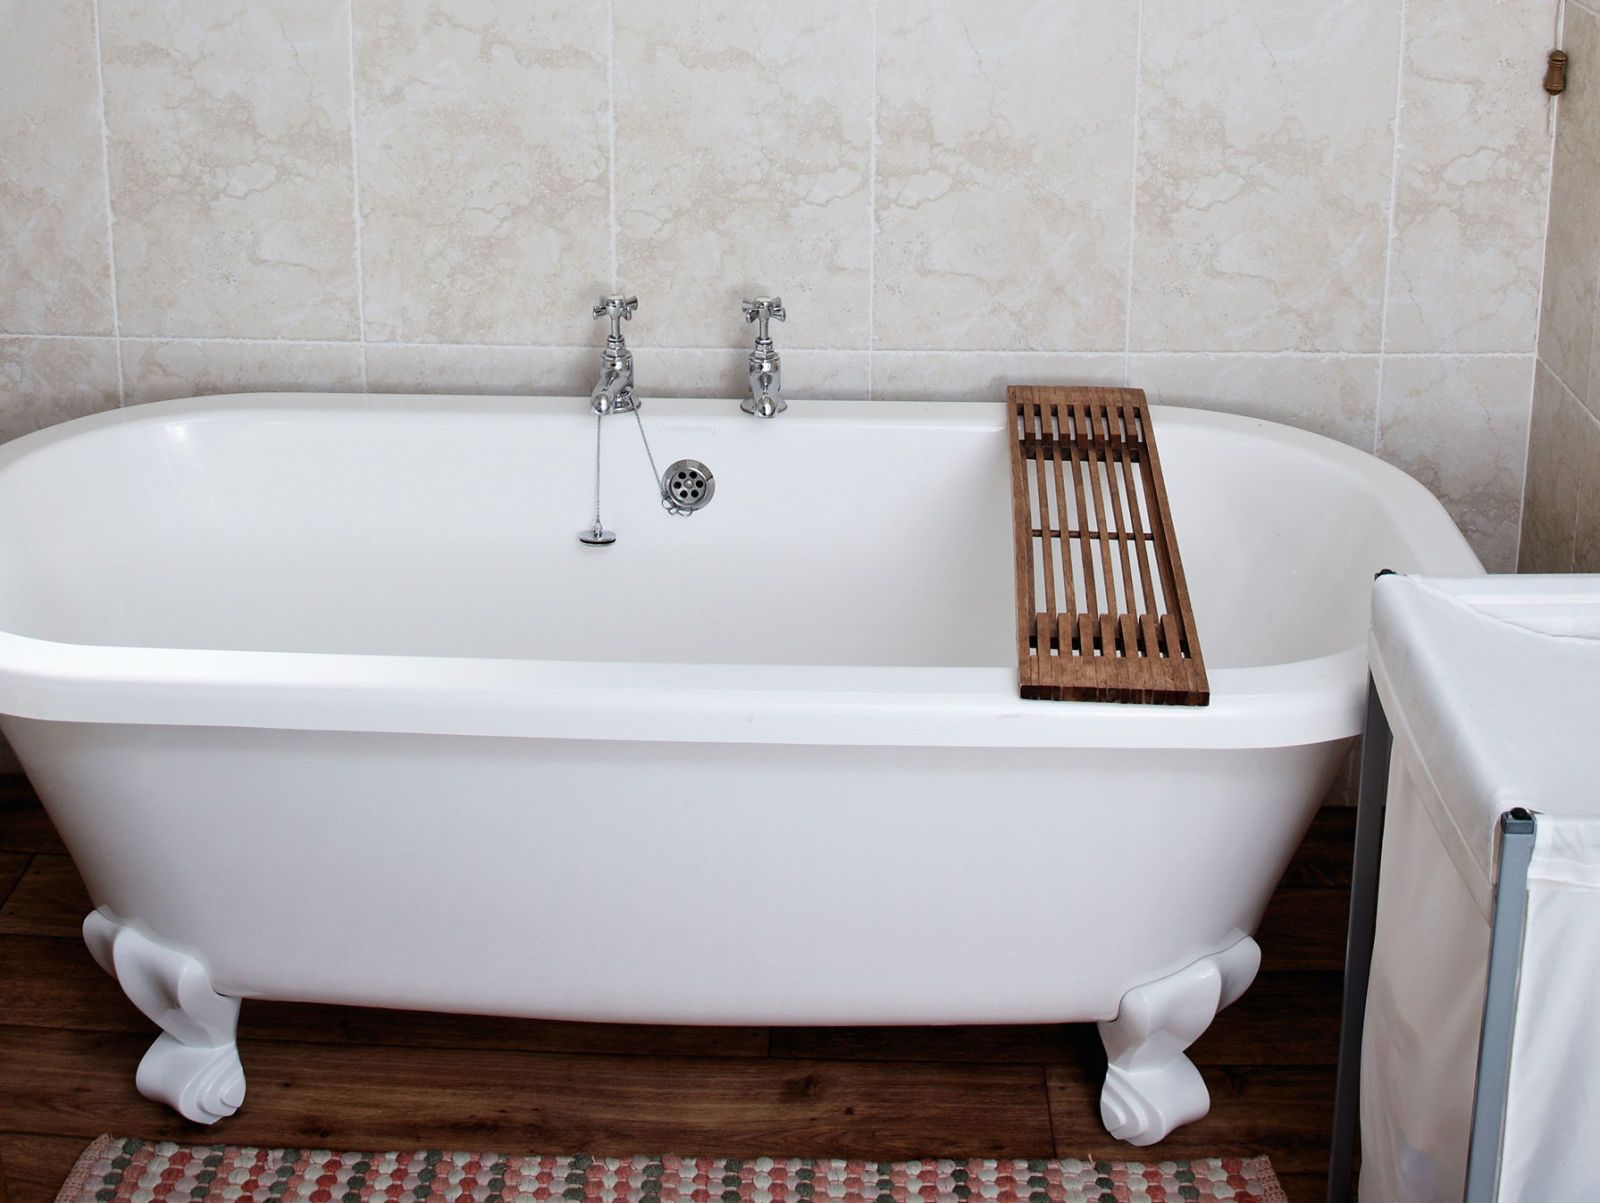 Gentil Enamel Bathtub In A Modern Bathroom